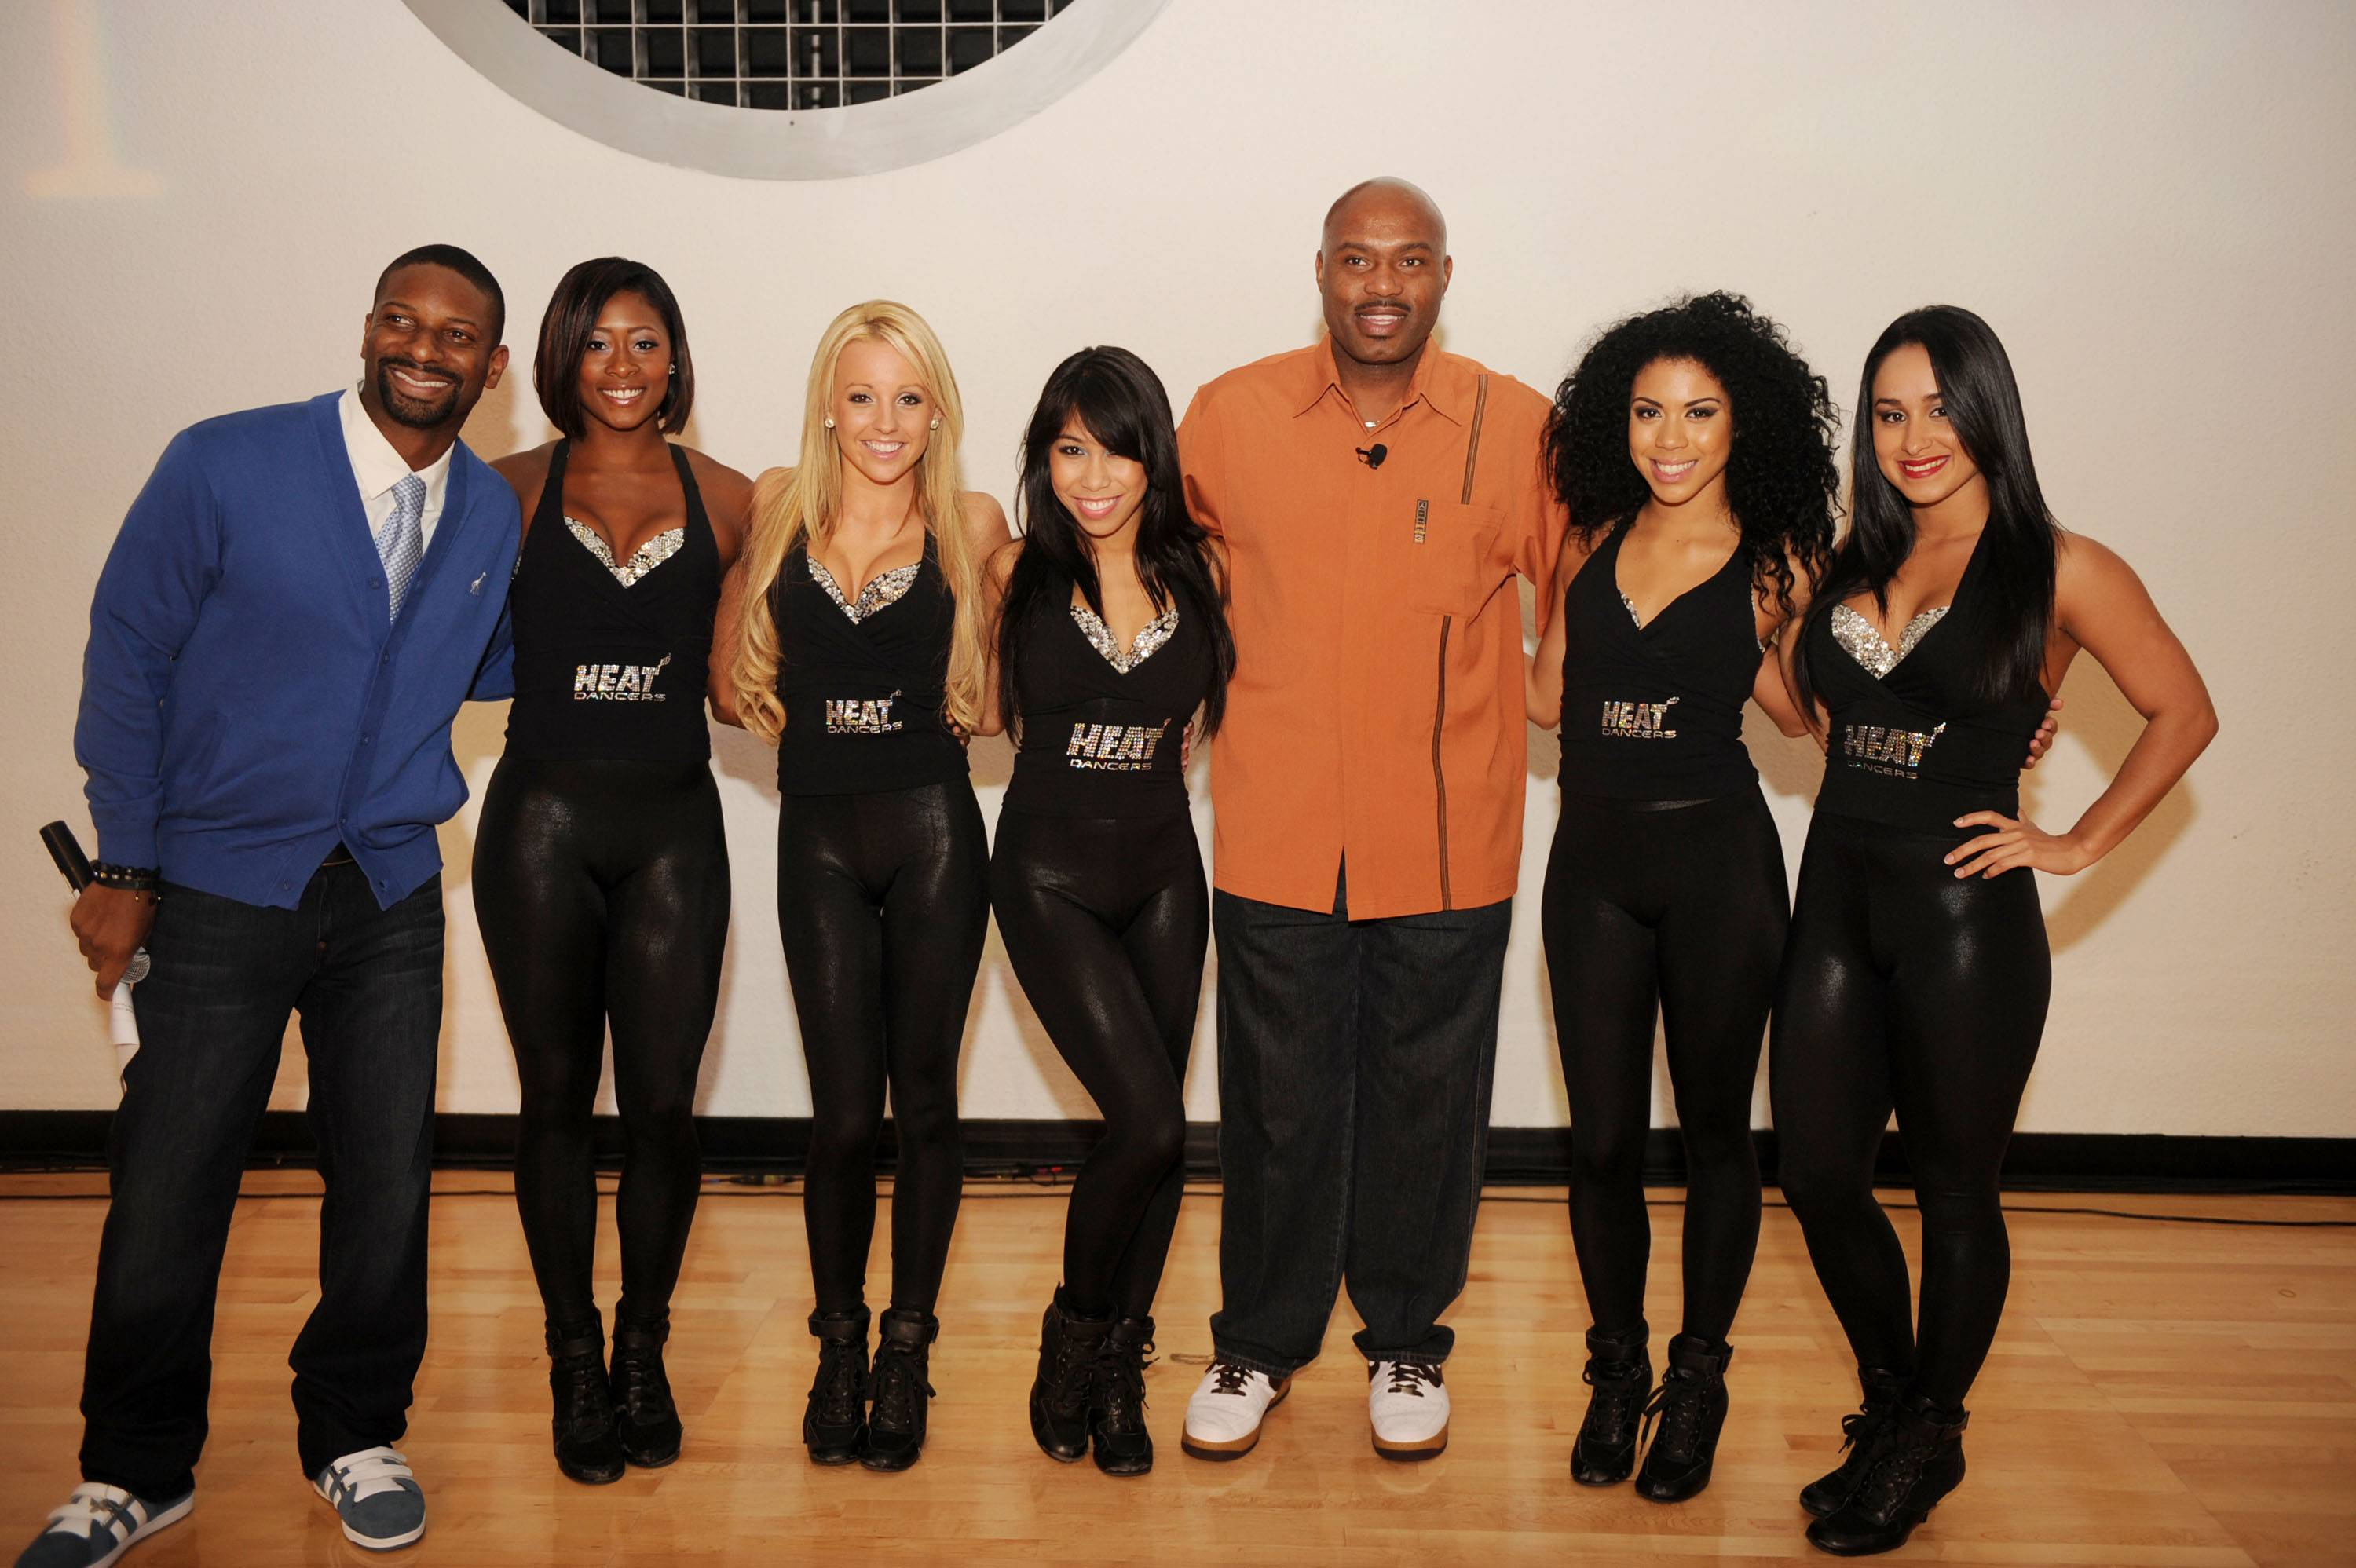 DJ Irie, Miami Heat Dancers and Tim Hardaway